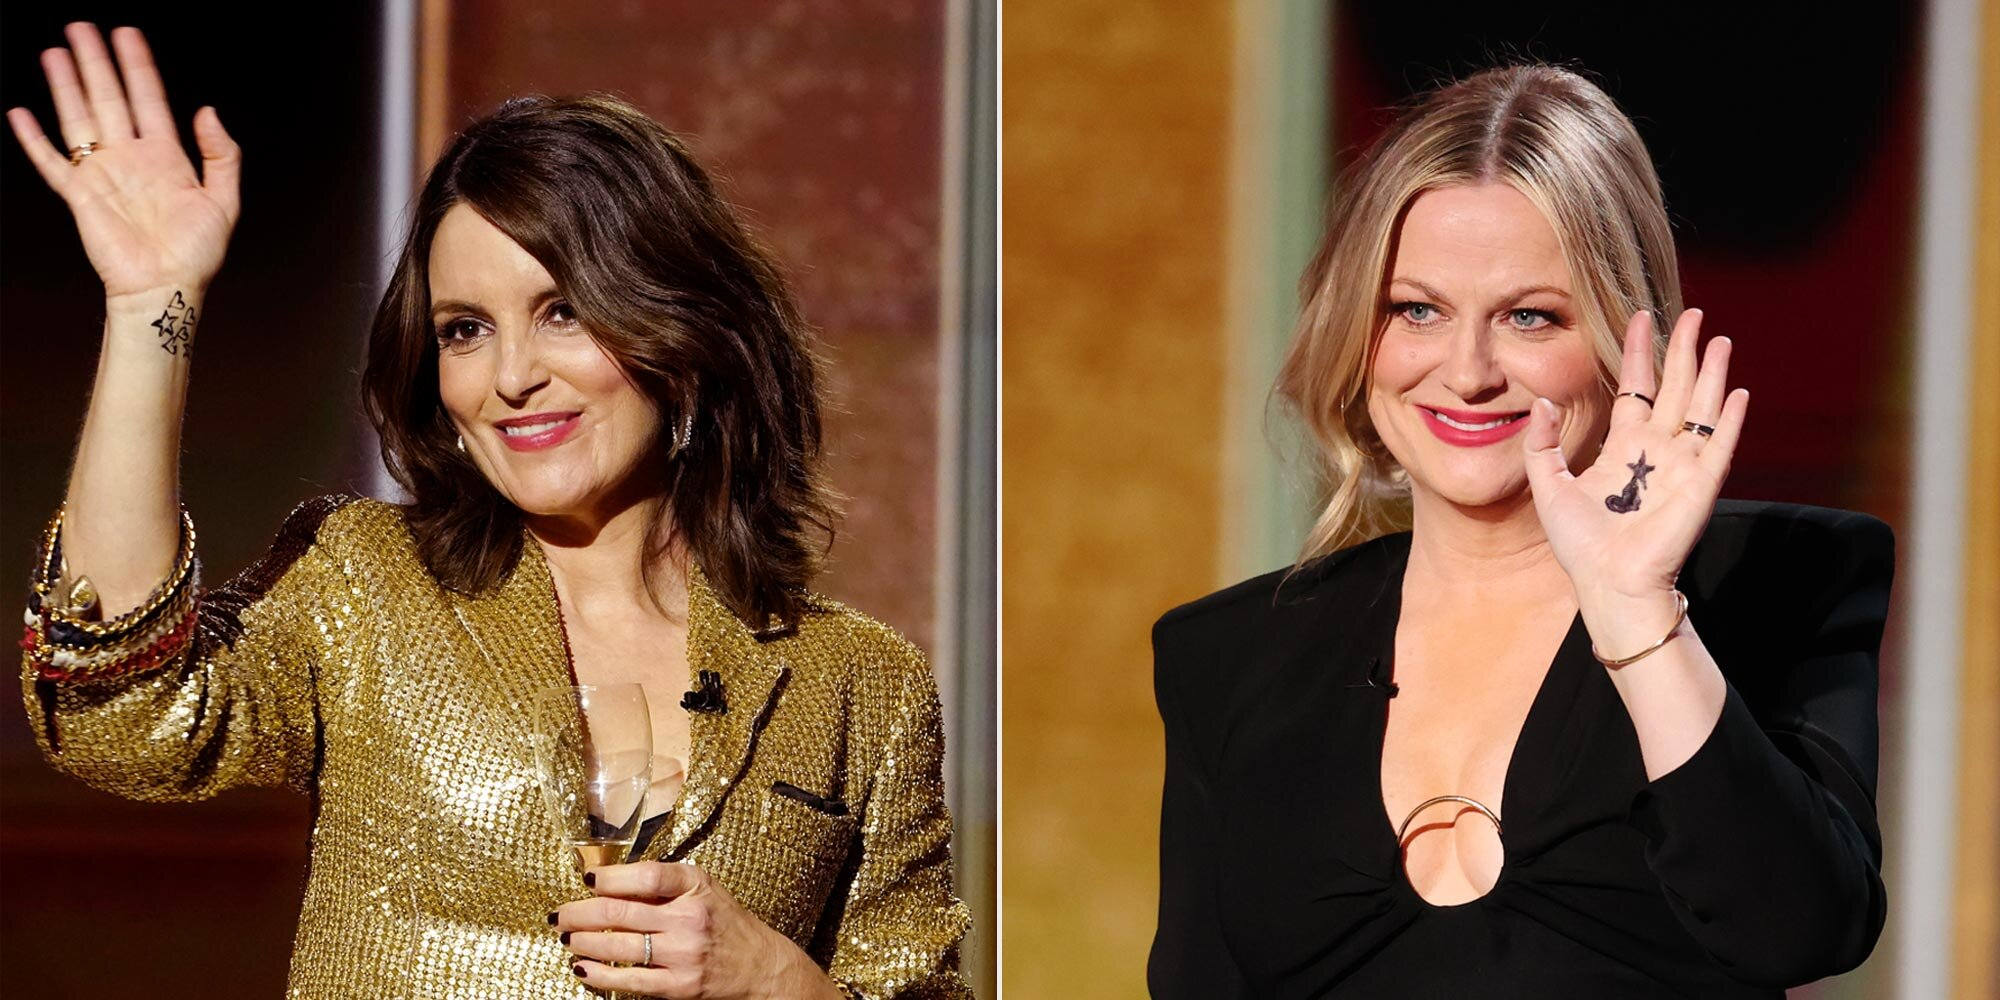 Here's why Amy Poehler and Tina Fey drew hearts and stars on their hands for the Golden Globes.jpg